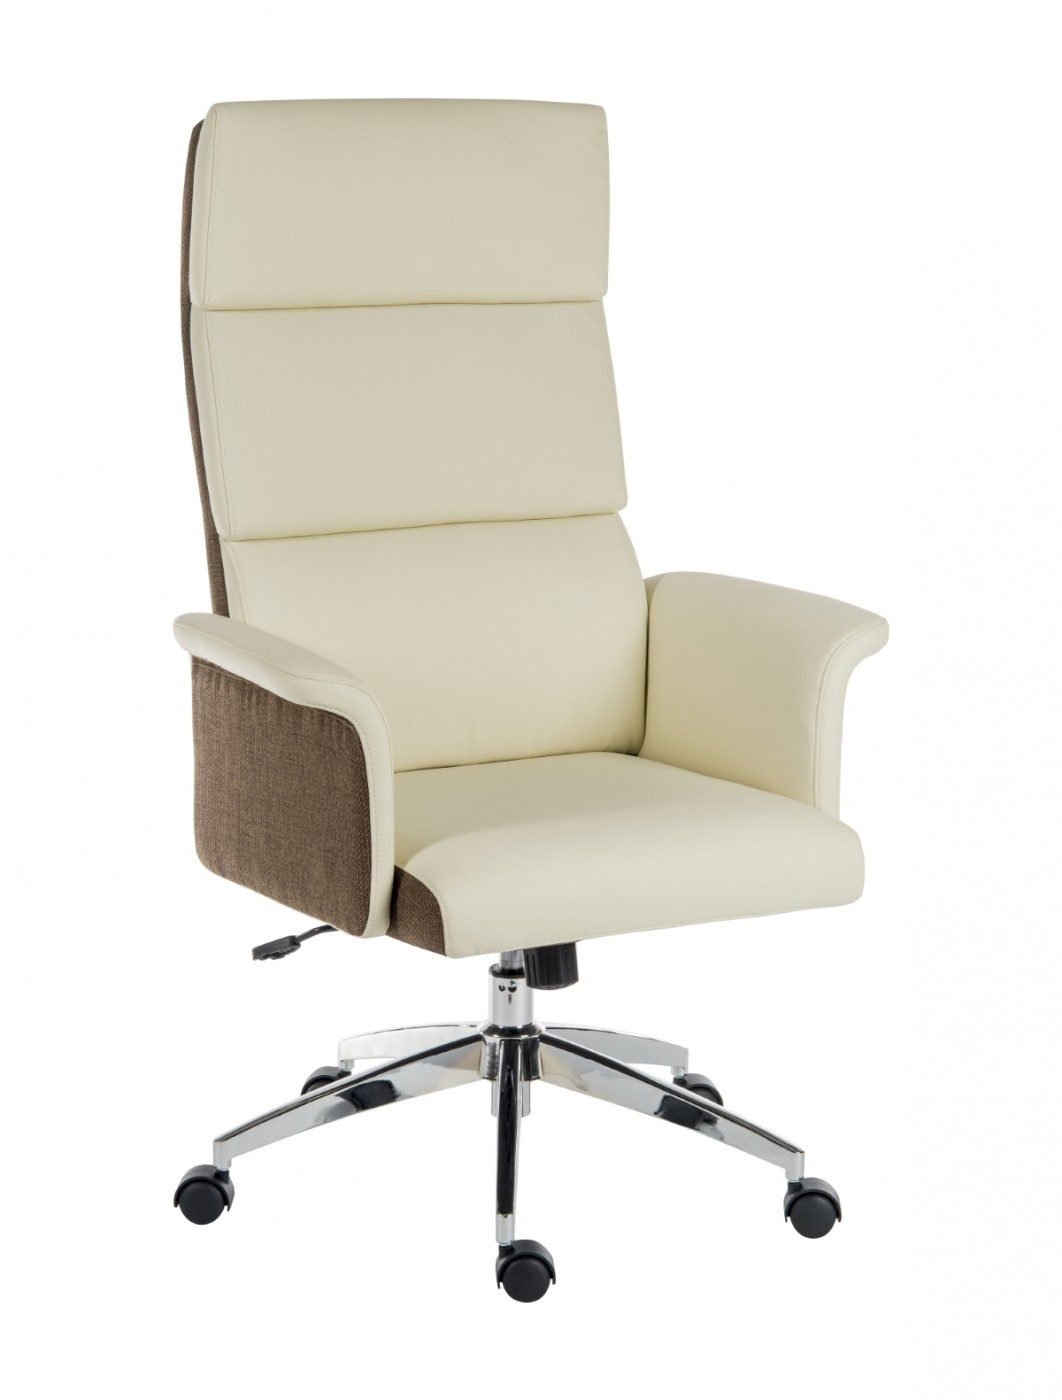 high office chairs. Office Chairs - Teknik Elegance High Chair 6950CRE Enlarged View E